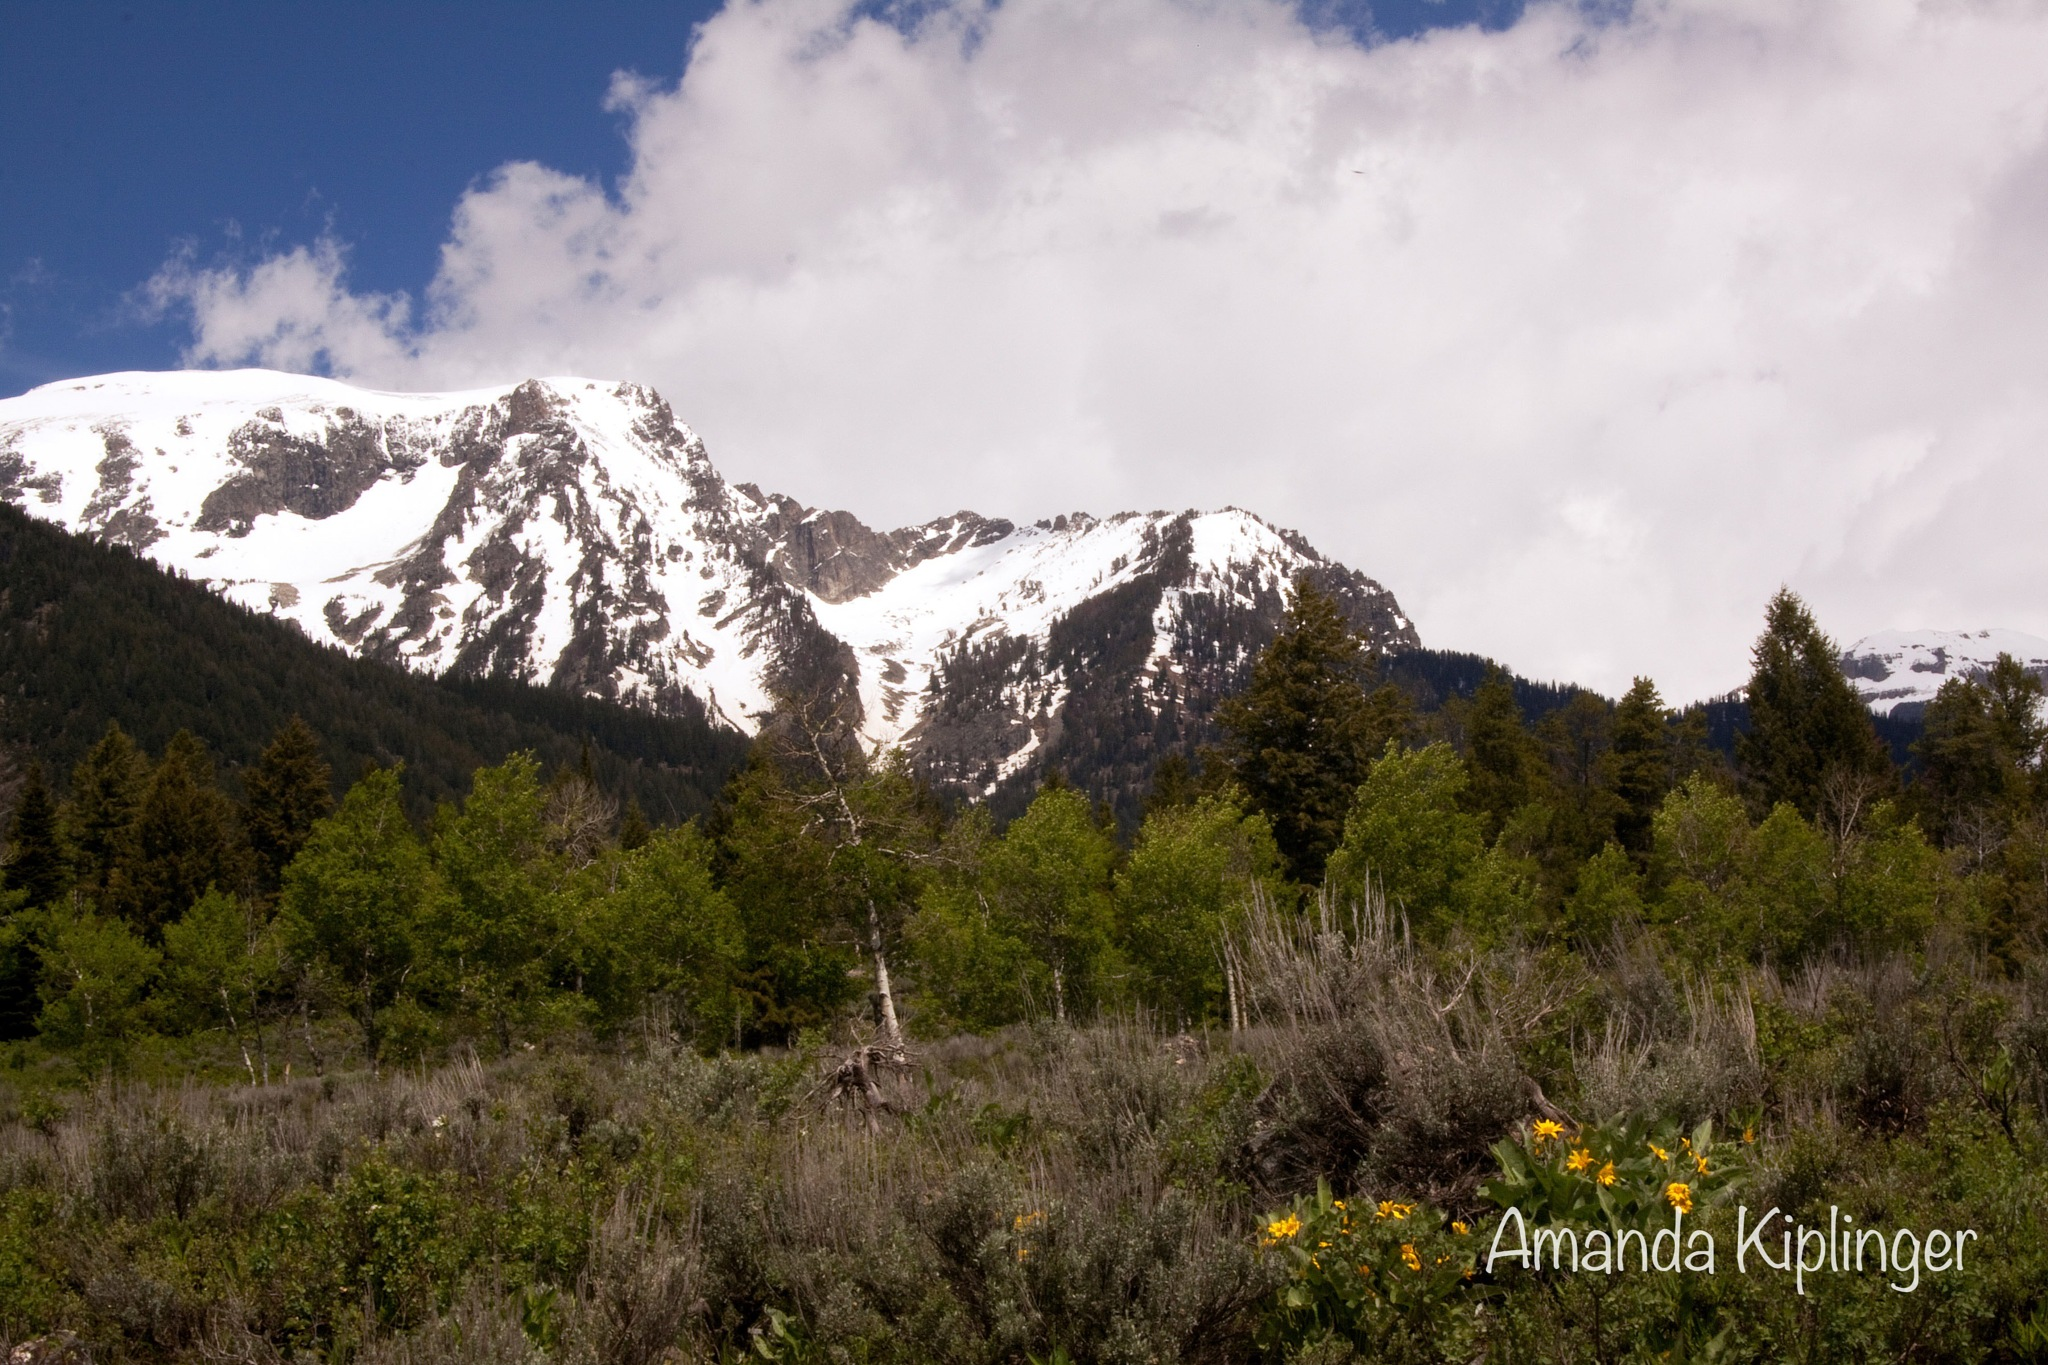 Mountains and Sky by Amanda Kiplinger